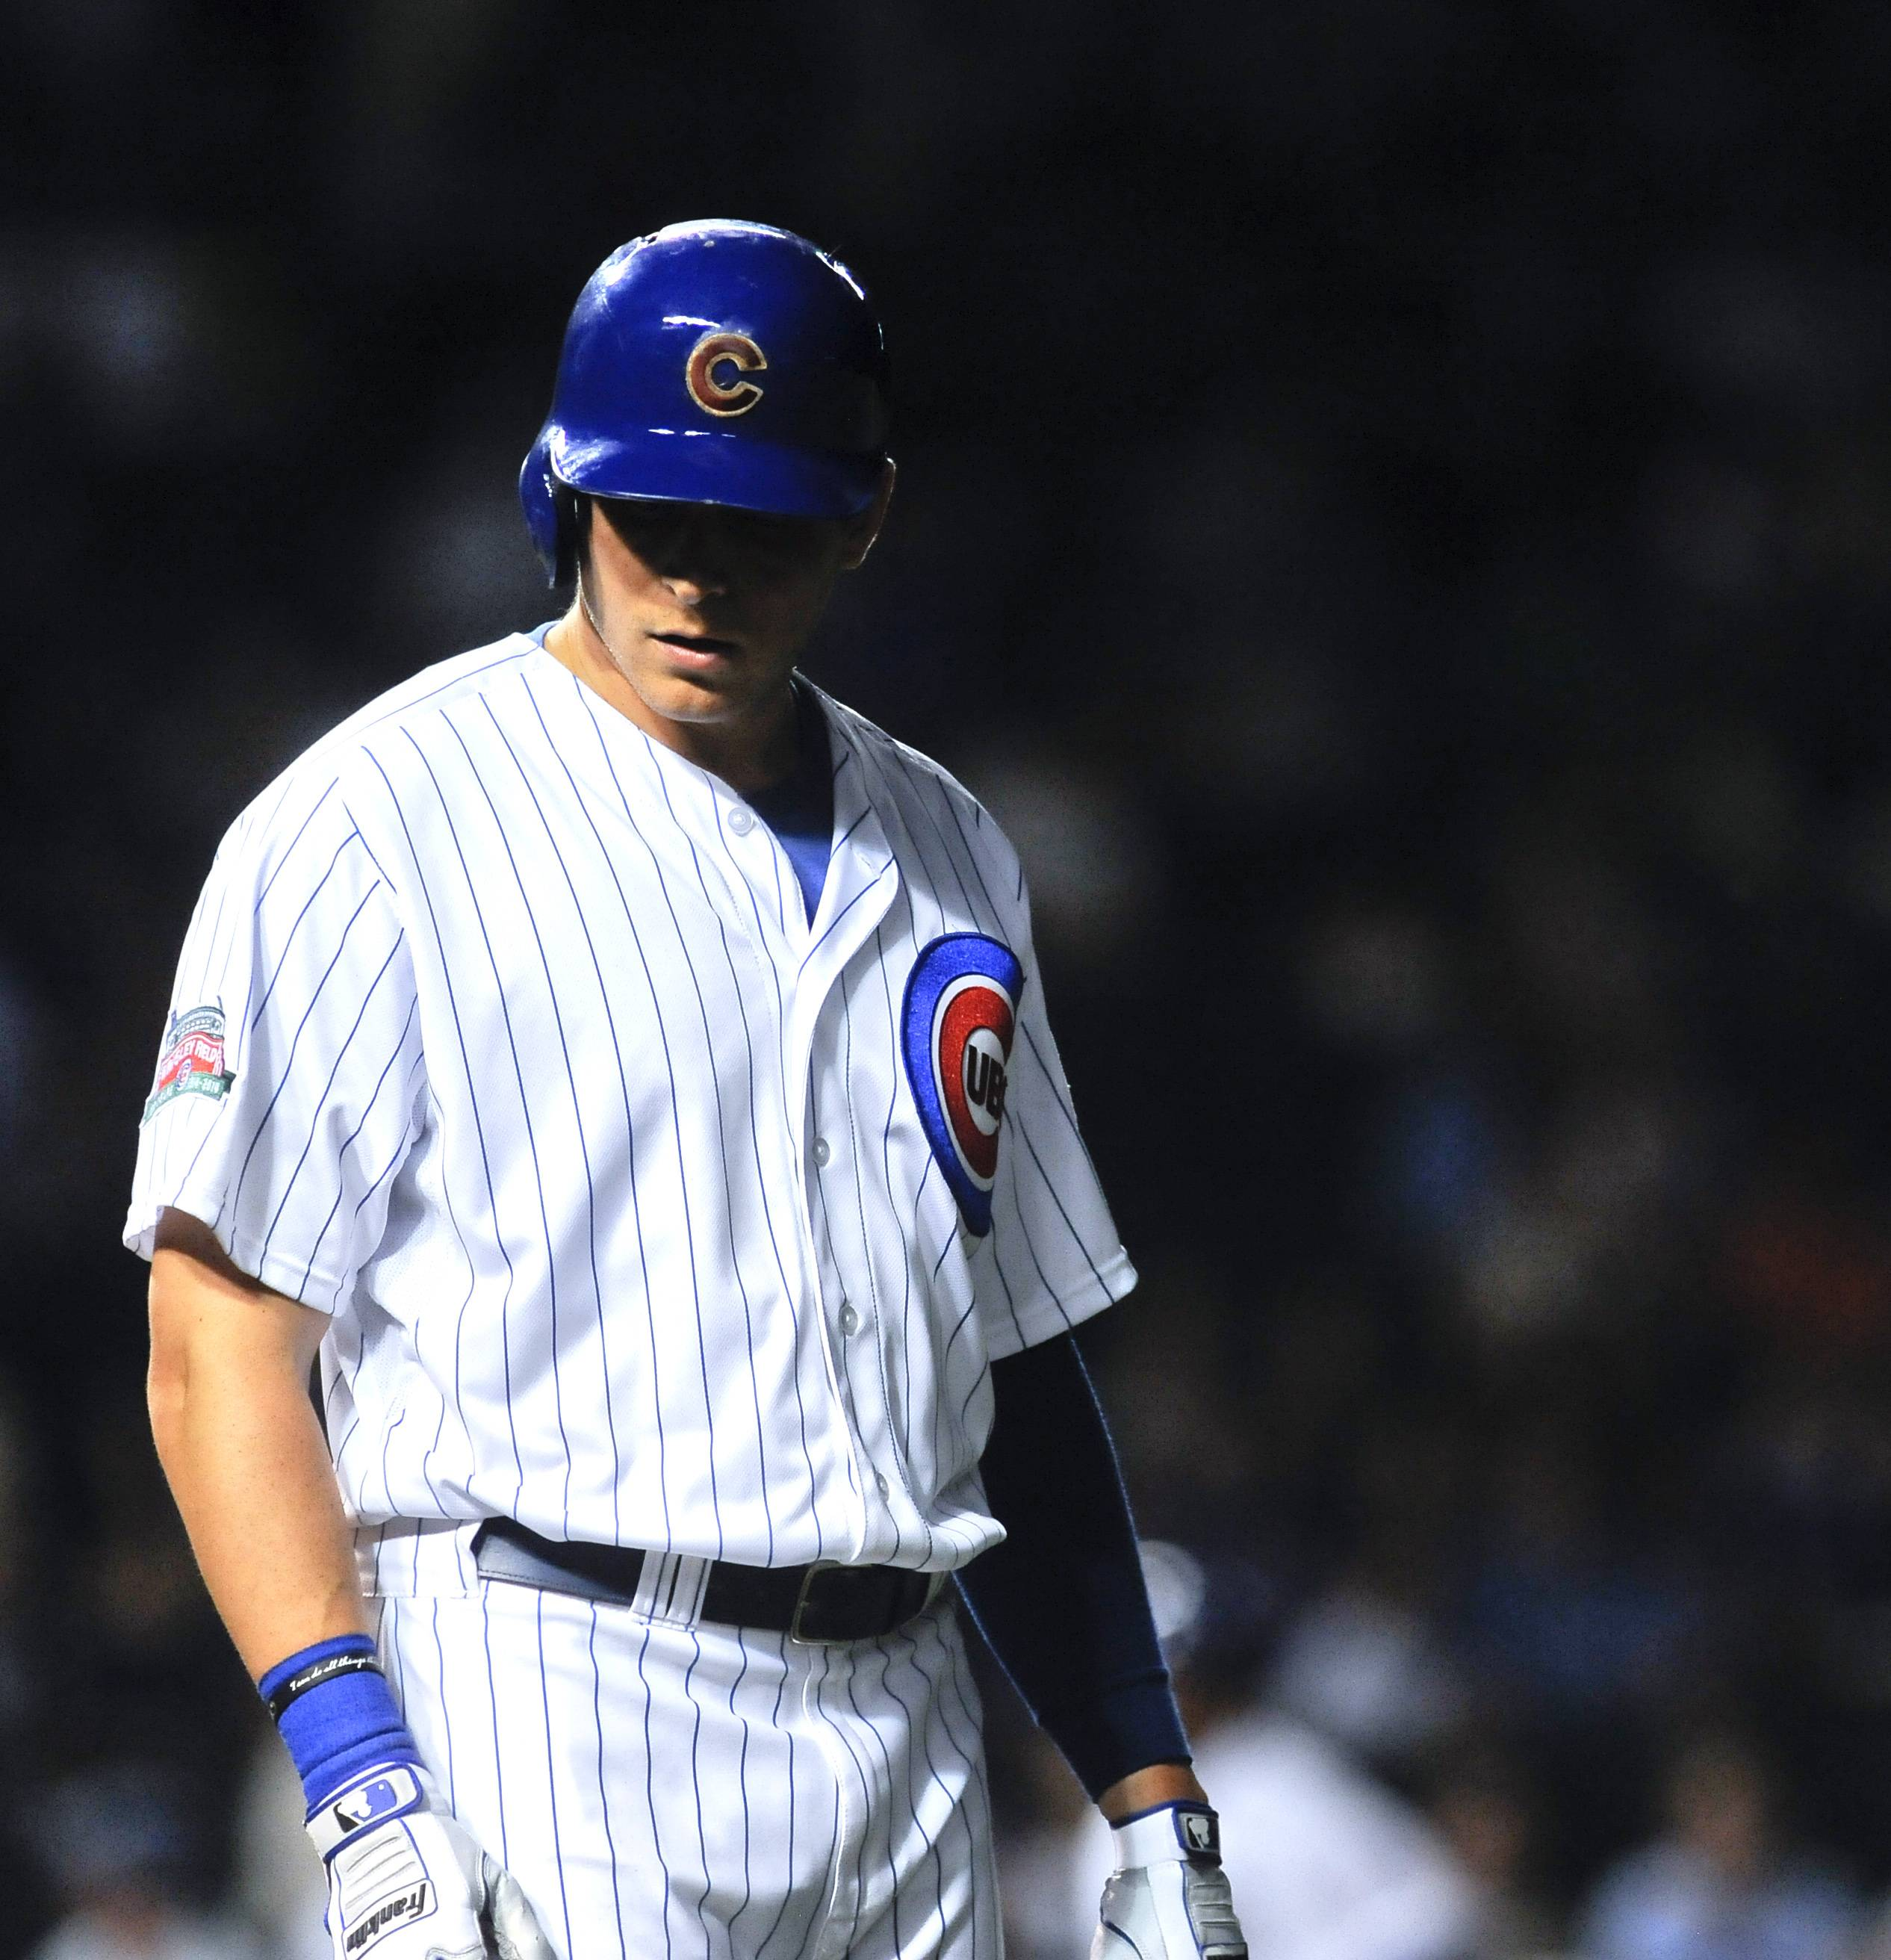 Chicago Cubs center fielder Ryan Sweeney grounds out to first base in the eighth inning of a baseball game against the San Francisco Giants on Wednesday in Chicago.